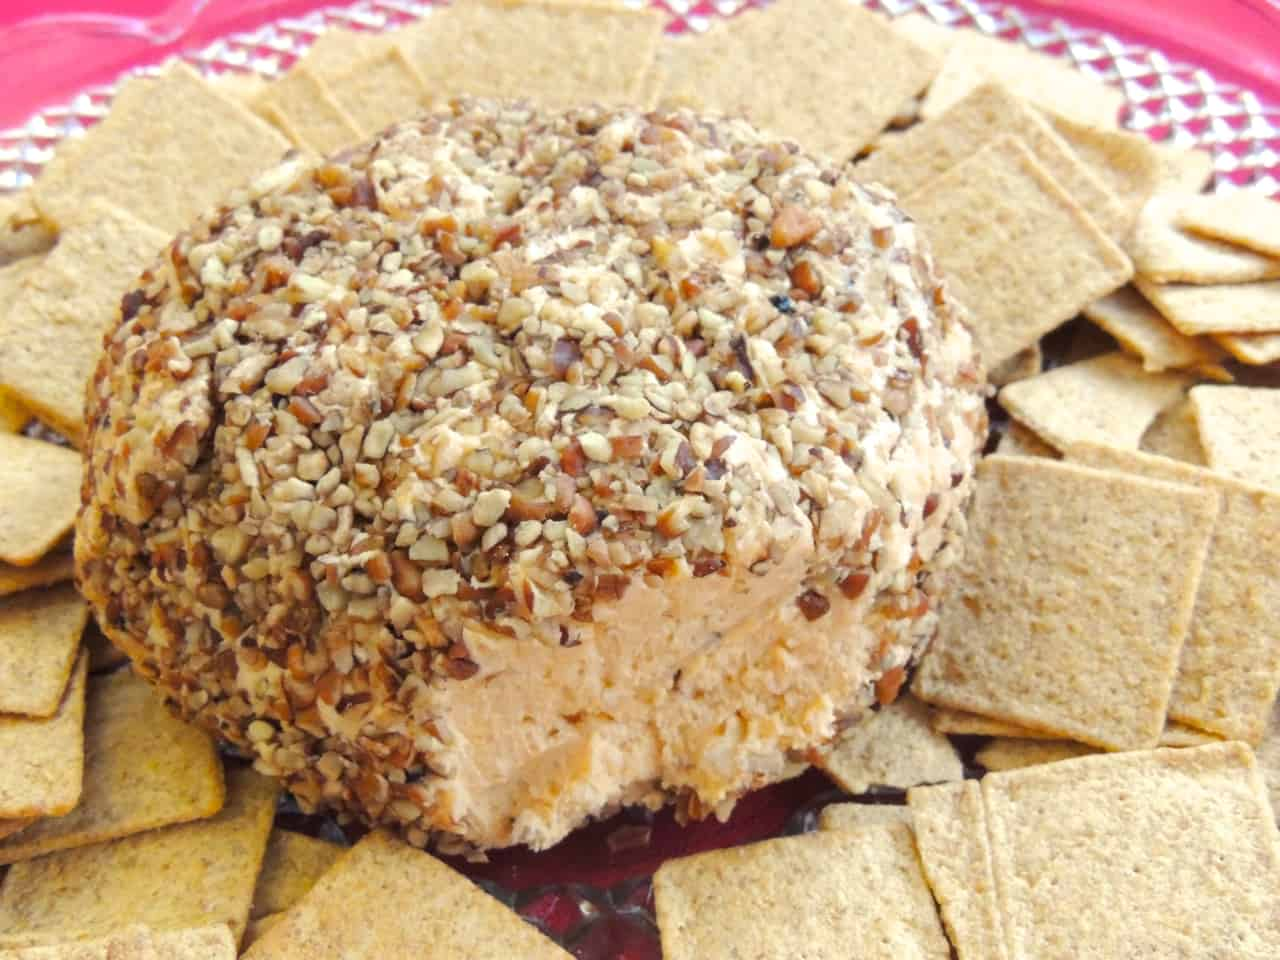 Aunt Louiseu0027s Cheese Ball & Aunt Louiseu0027s Cheese Ball | Southern Plate